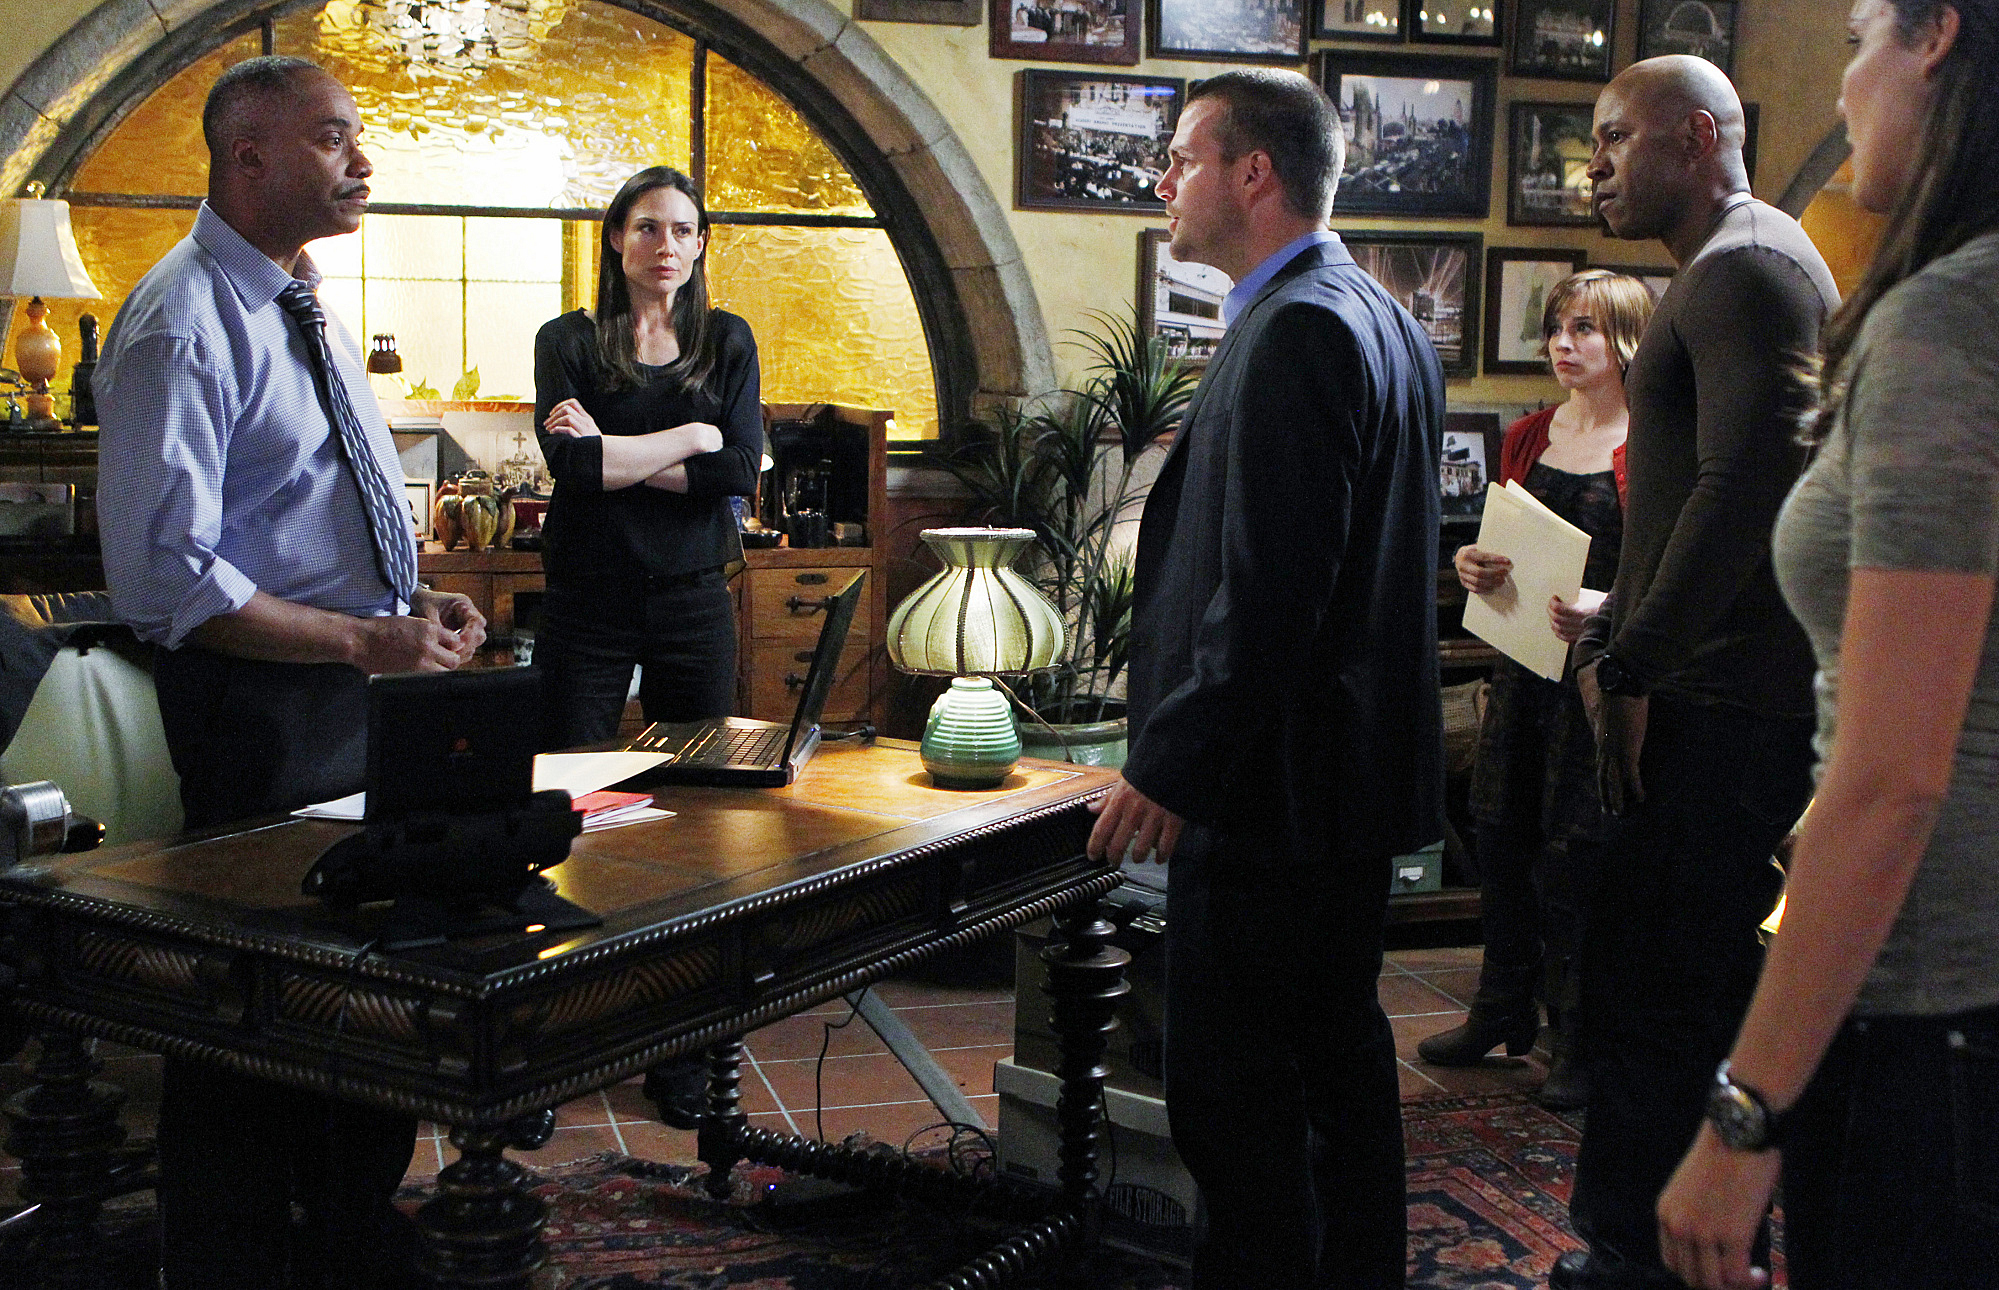 The Team is on Alert After Hetty's Resignation